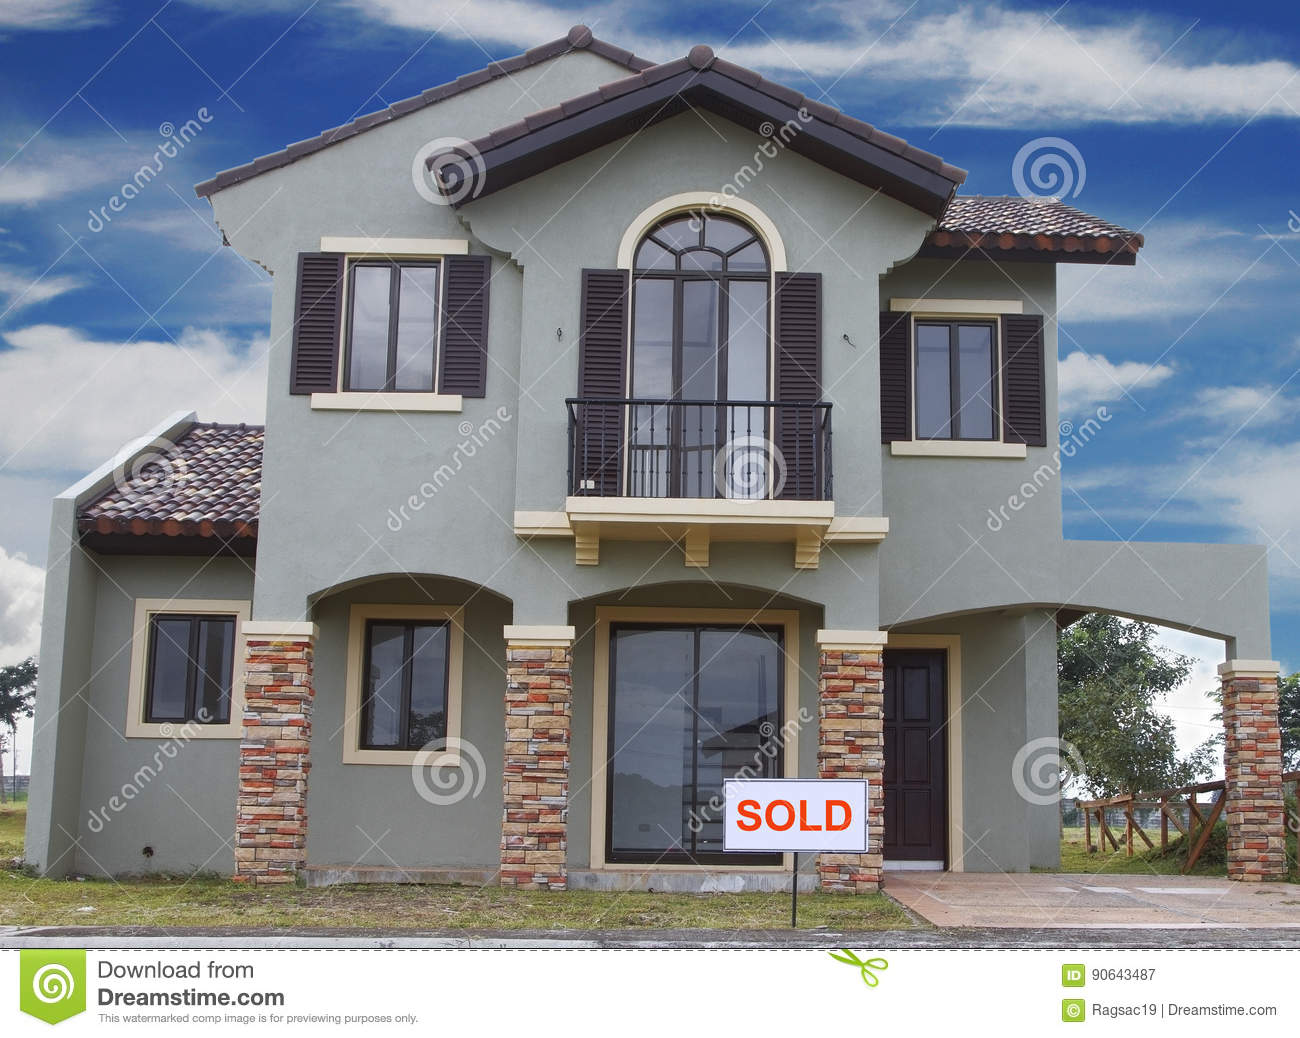 Sold Stock Image Image Of Rent Home Sale House